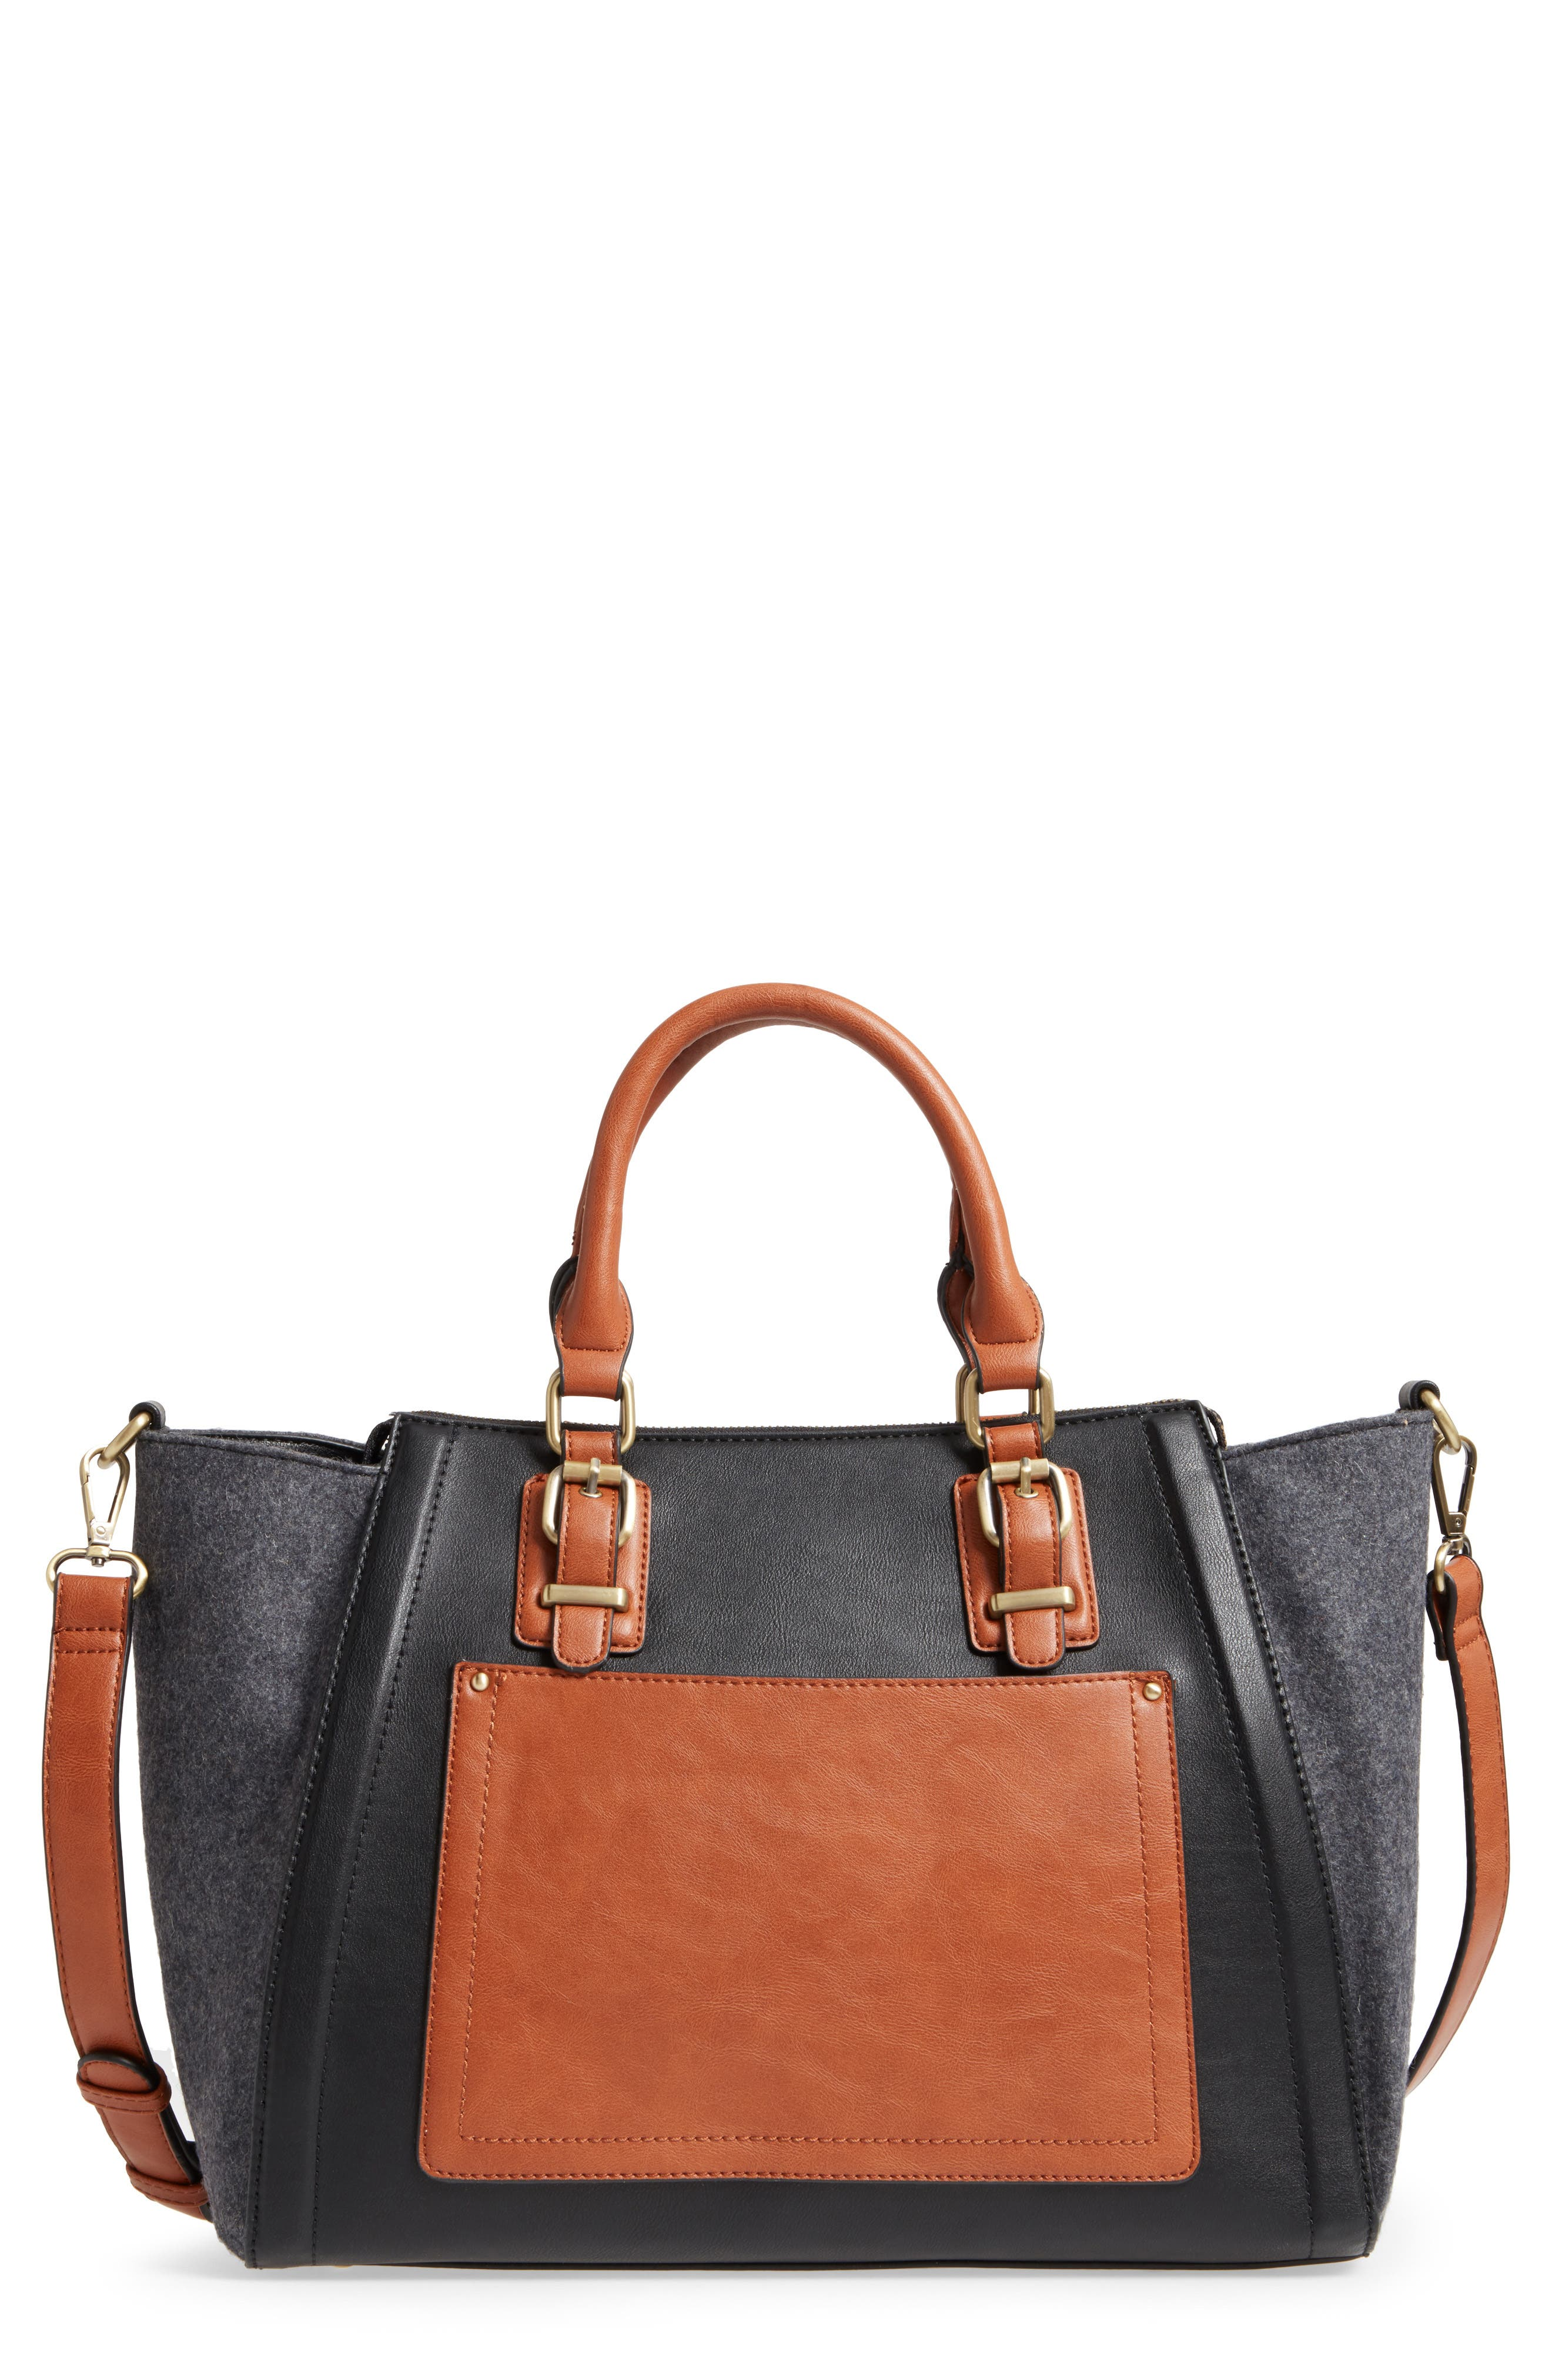 'Jensen' Mixed Media Tote,                         Main,                         color, 021